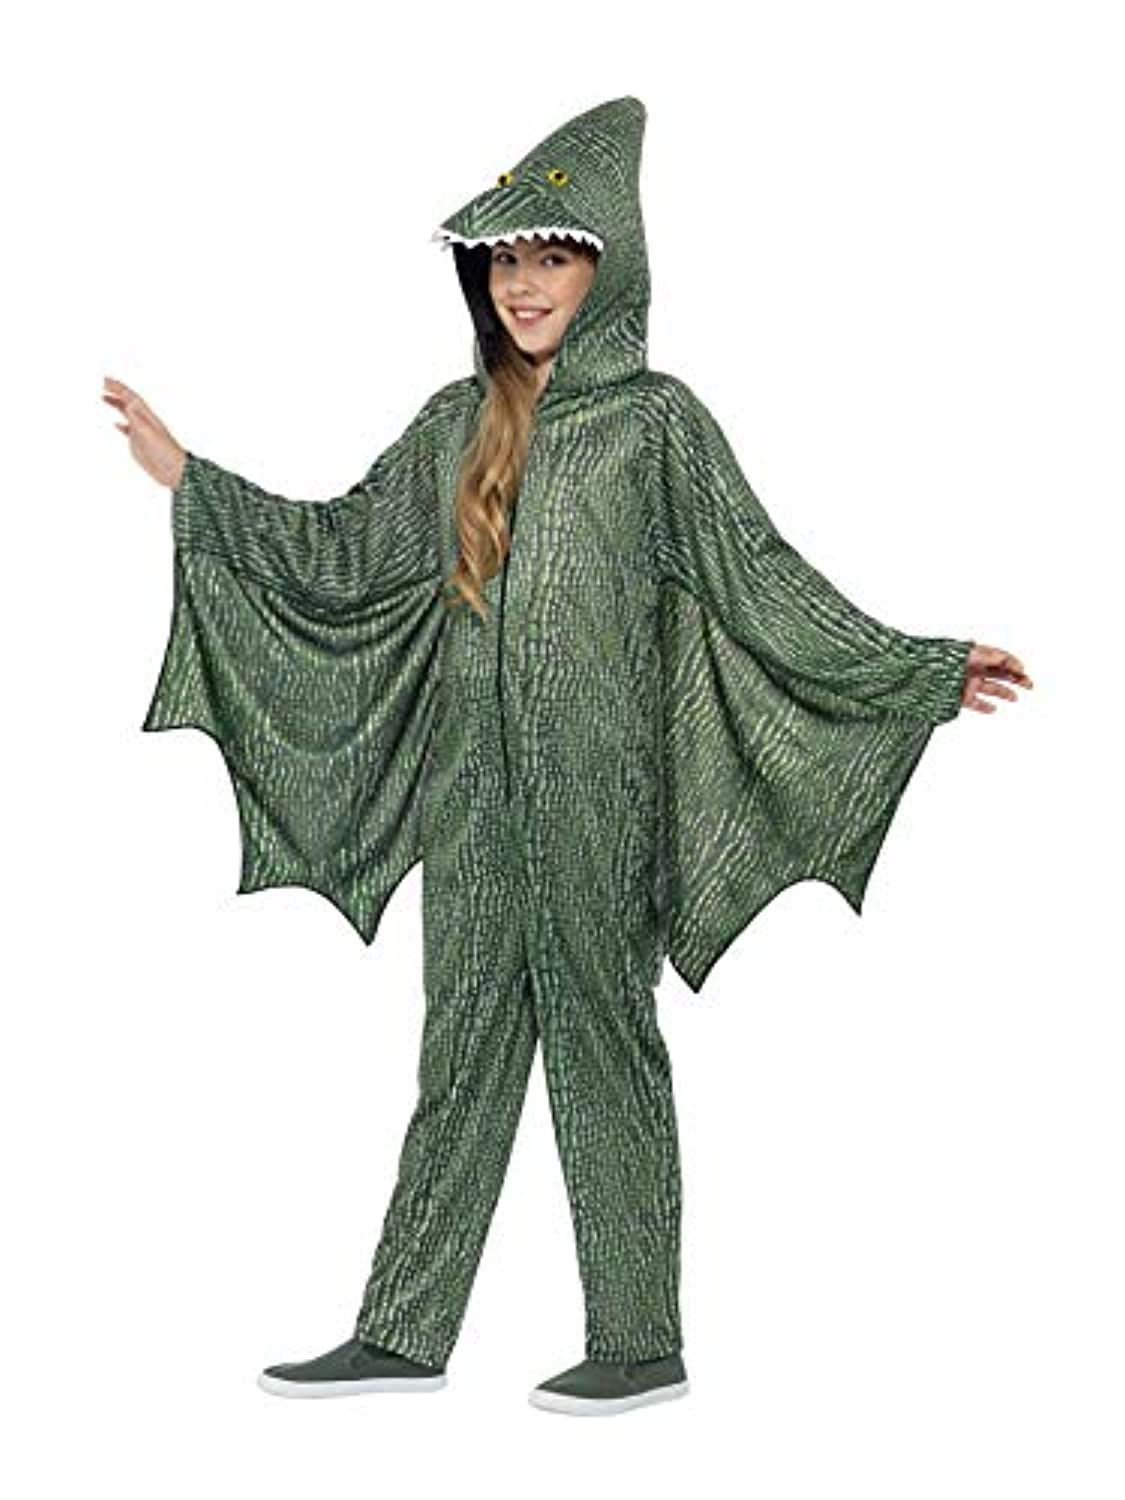 (Small Ages 4 -6) - Pterodactyl Dinosaur - Childrens Fancy Dress Costume - Small - 128cm - Age - 4-6